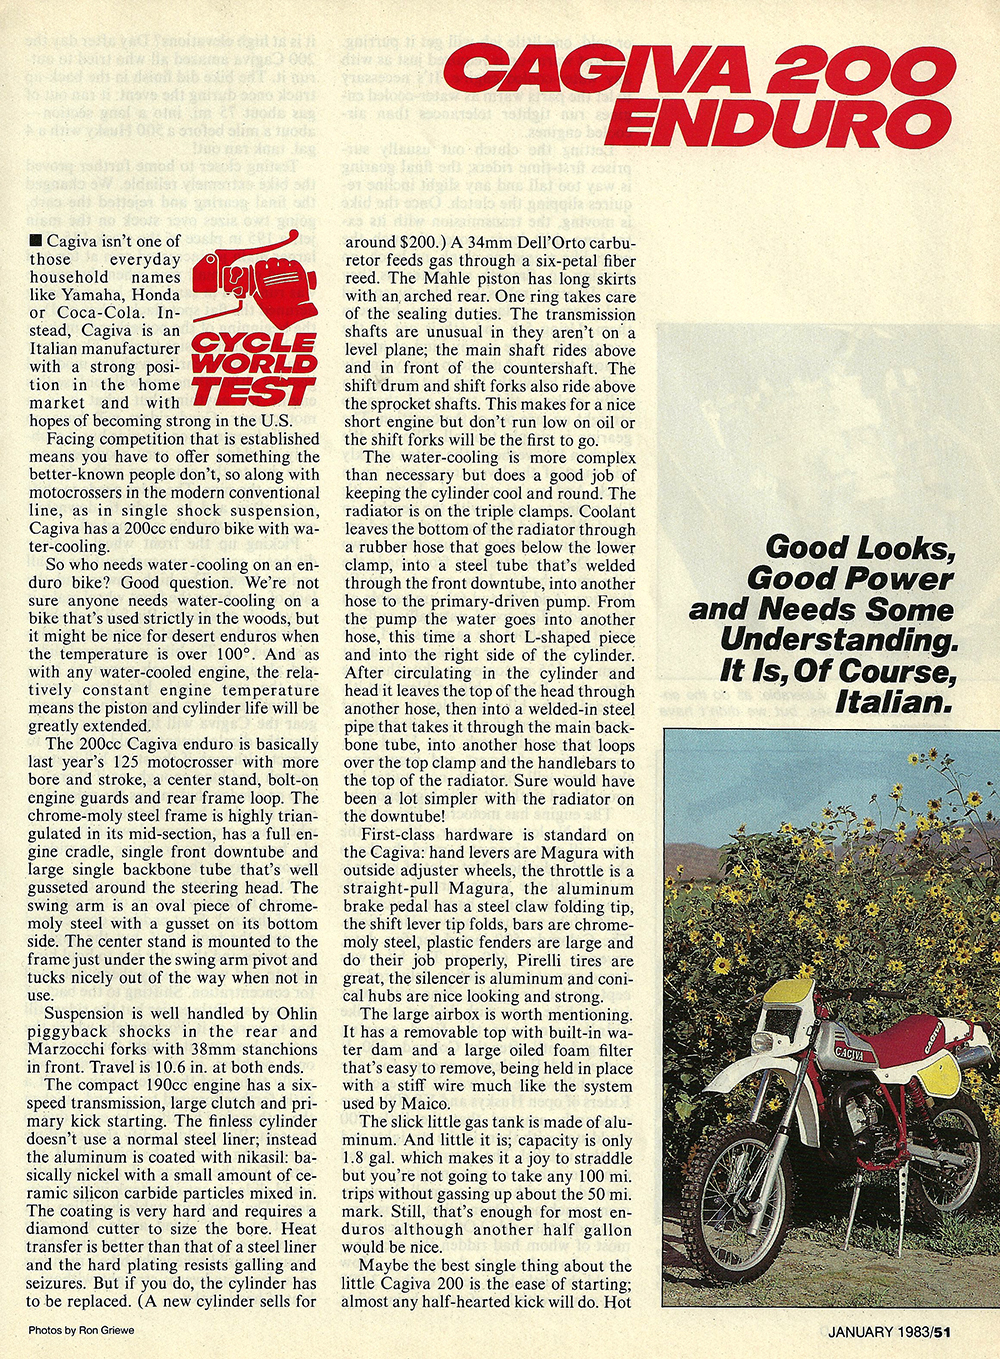 1983 Cagiva 200 Enduro road test 02.jpg